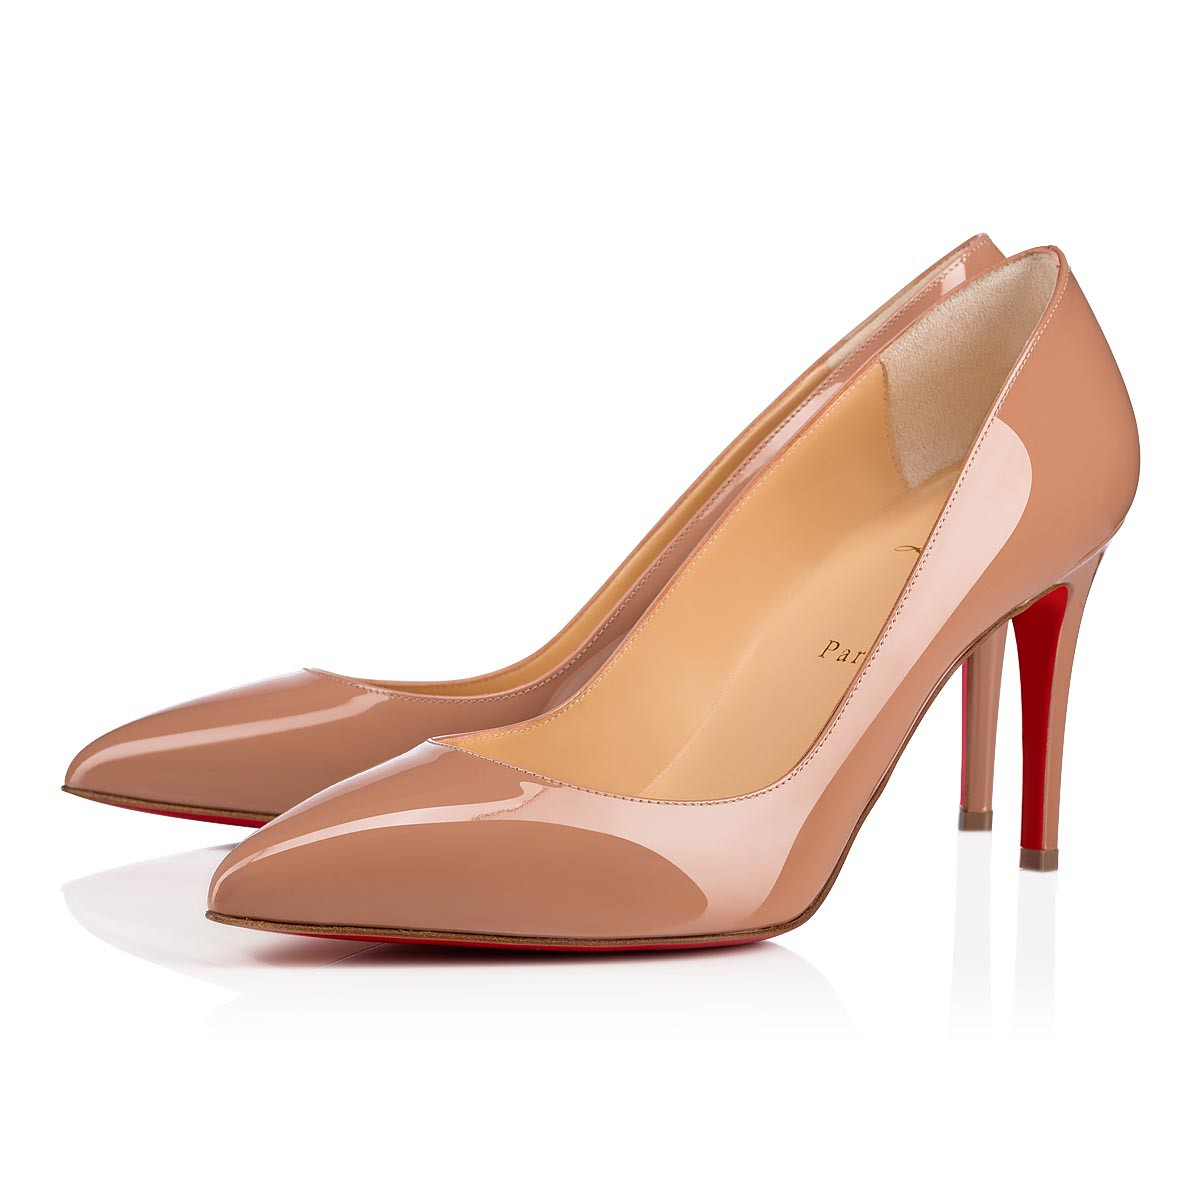 8b6a1987875 Pigalle 85 Nude Patent Leather - Women Shoes - Christian Louboutin